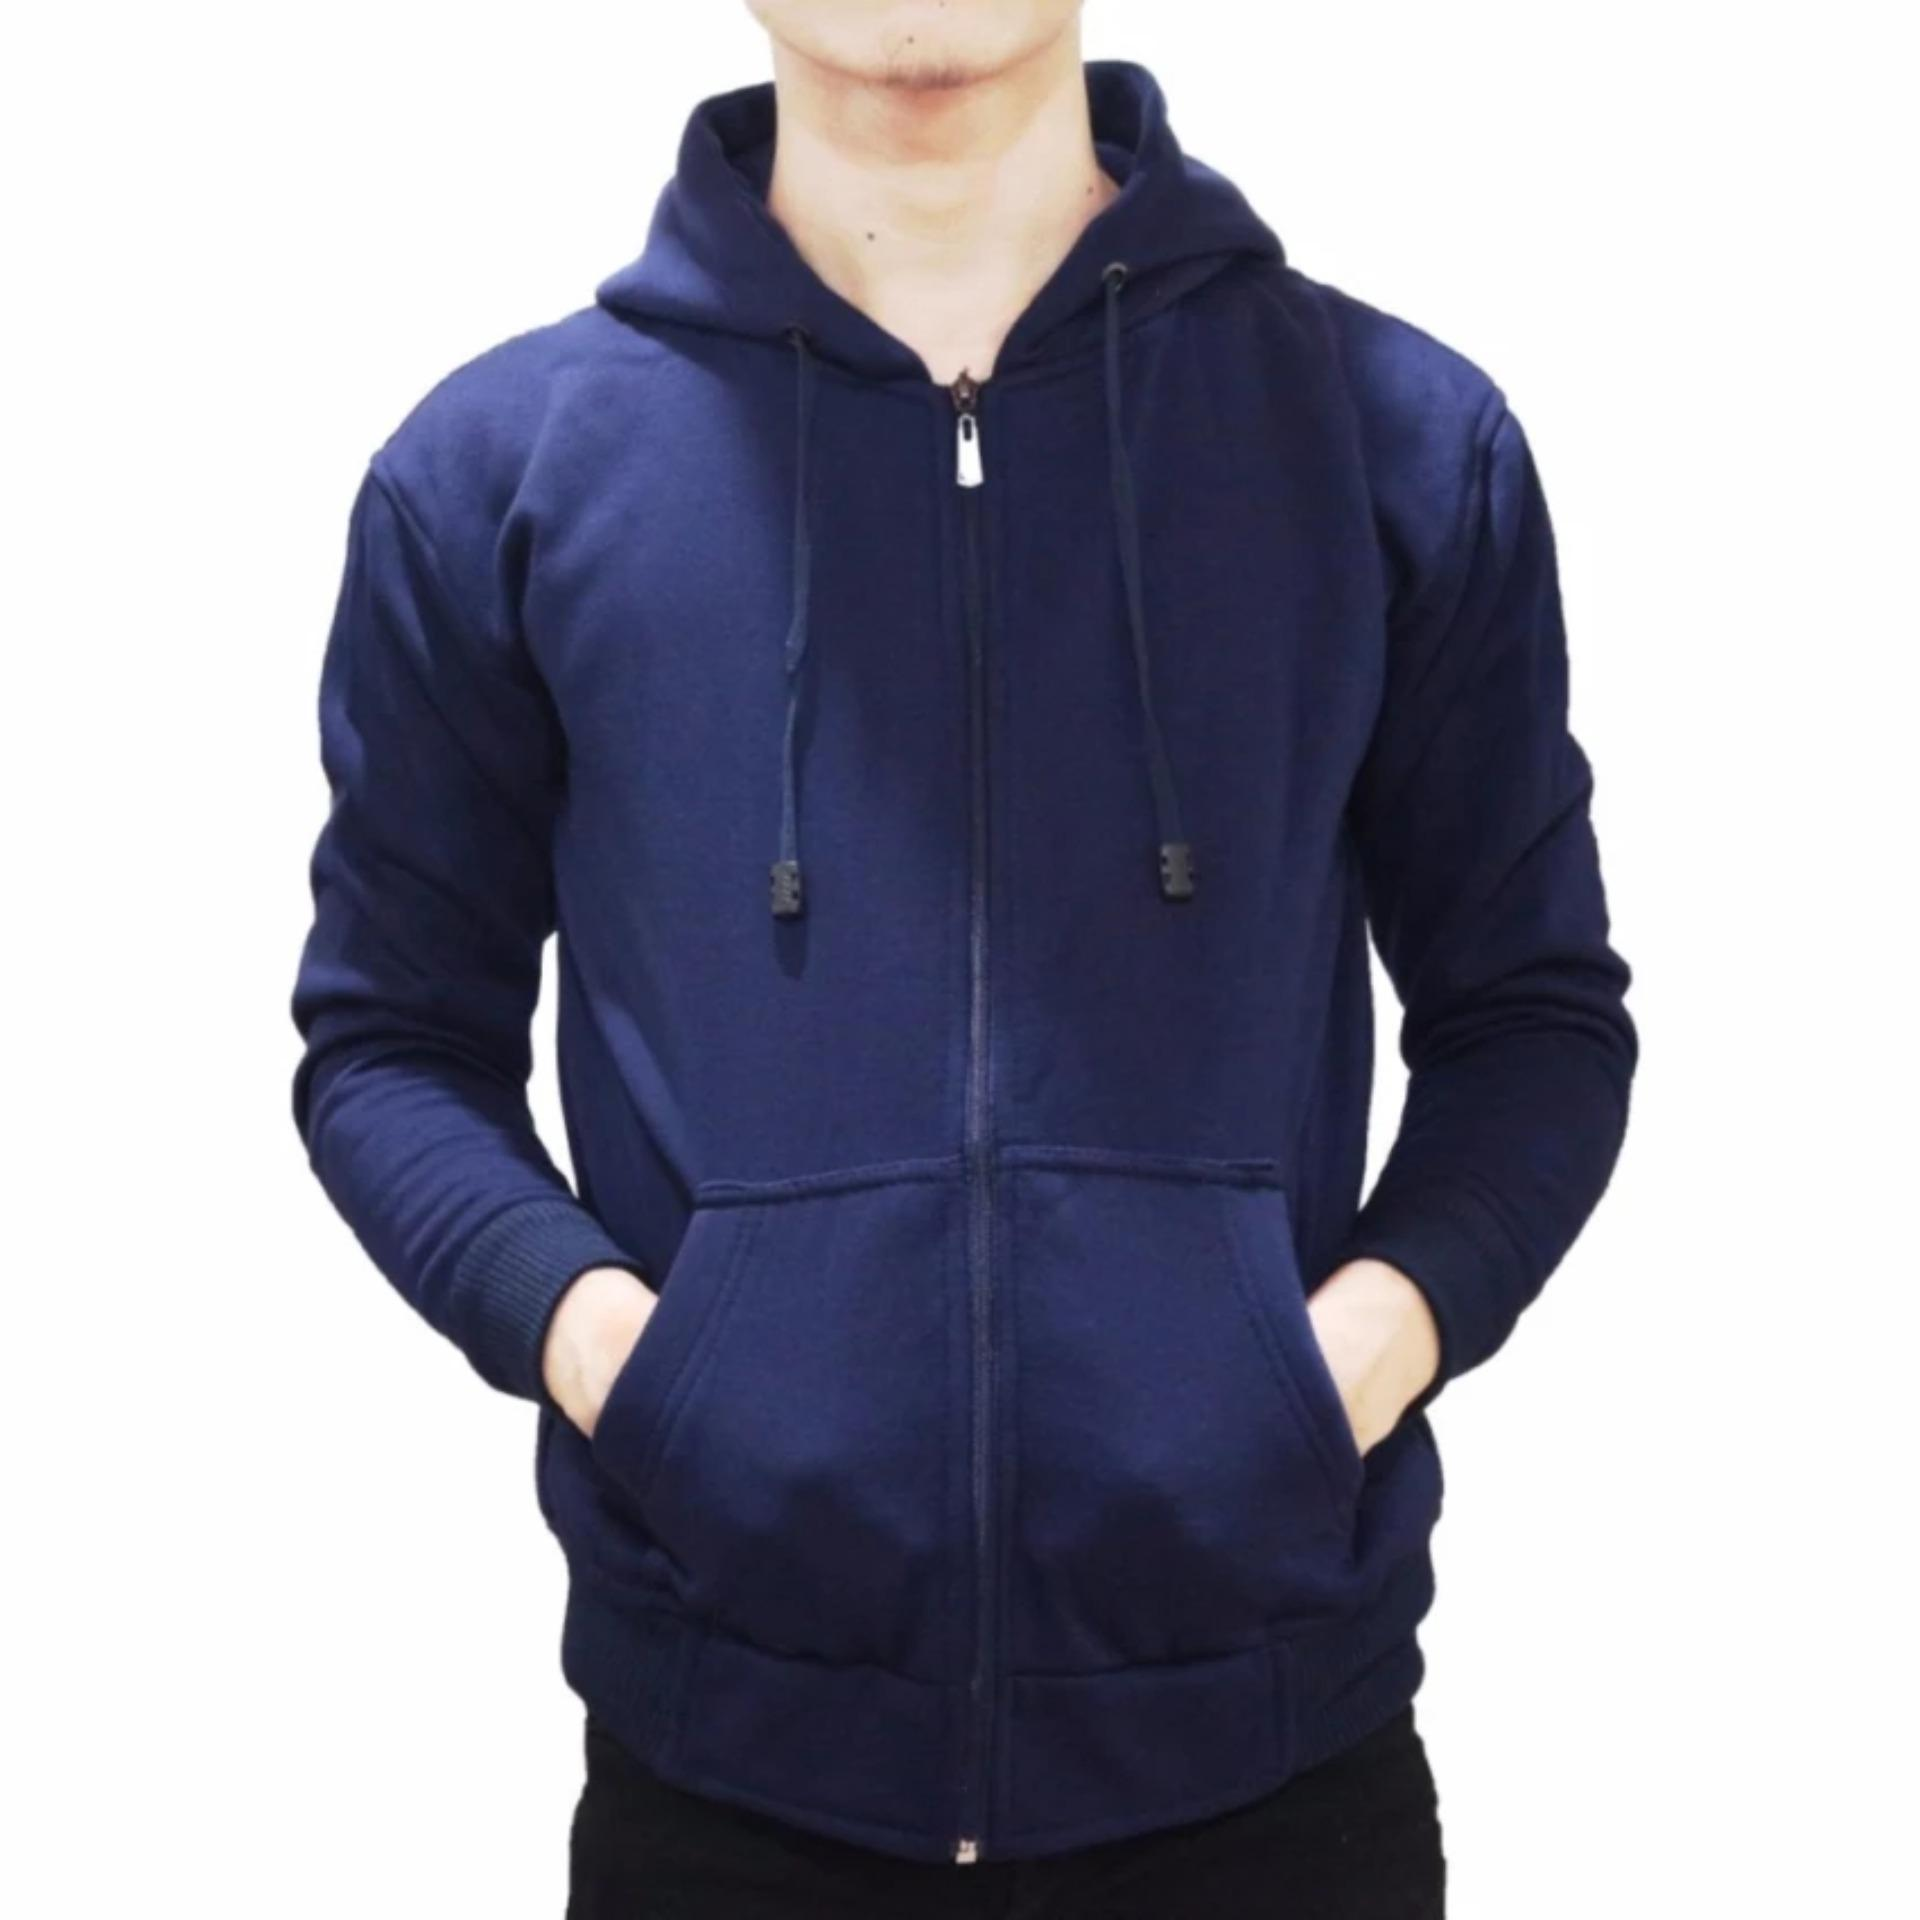 VERICHI - Jaket Sweater Hoodie Pria Zipper Polos Bahan Fleece 31df66fe9a